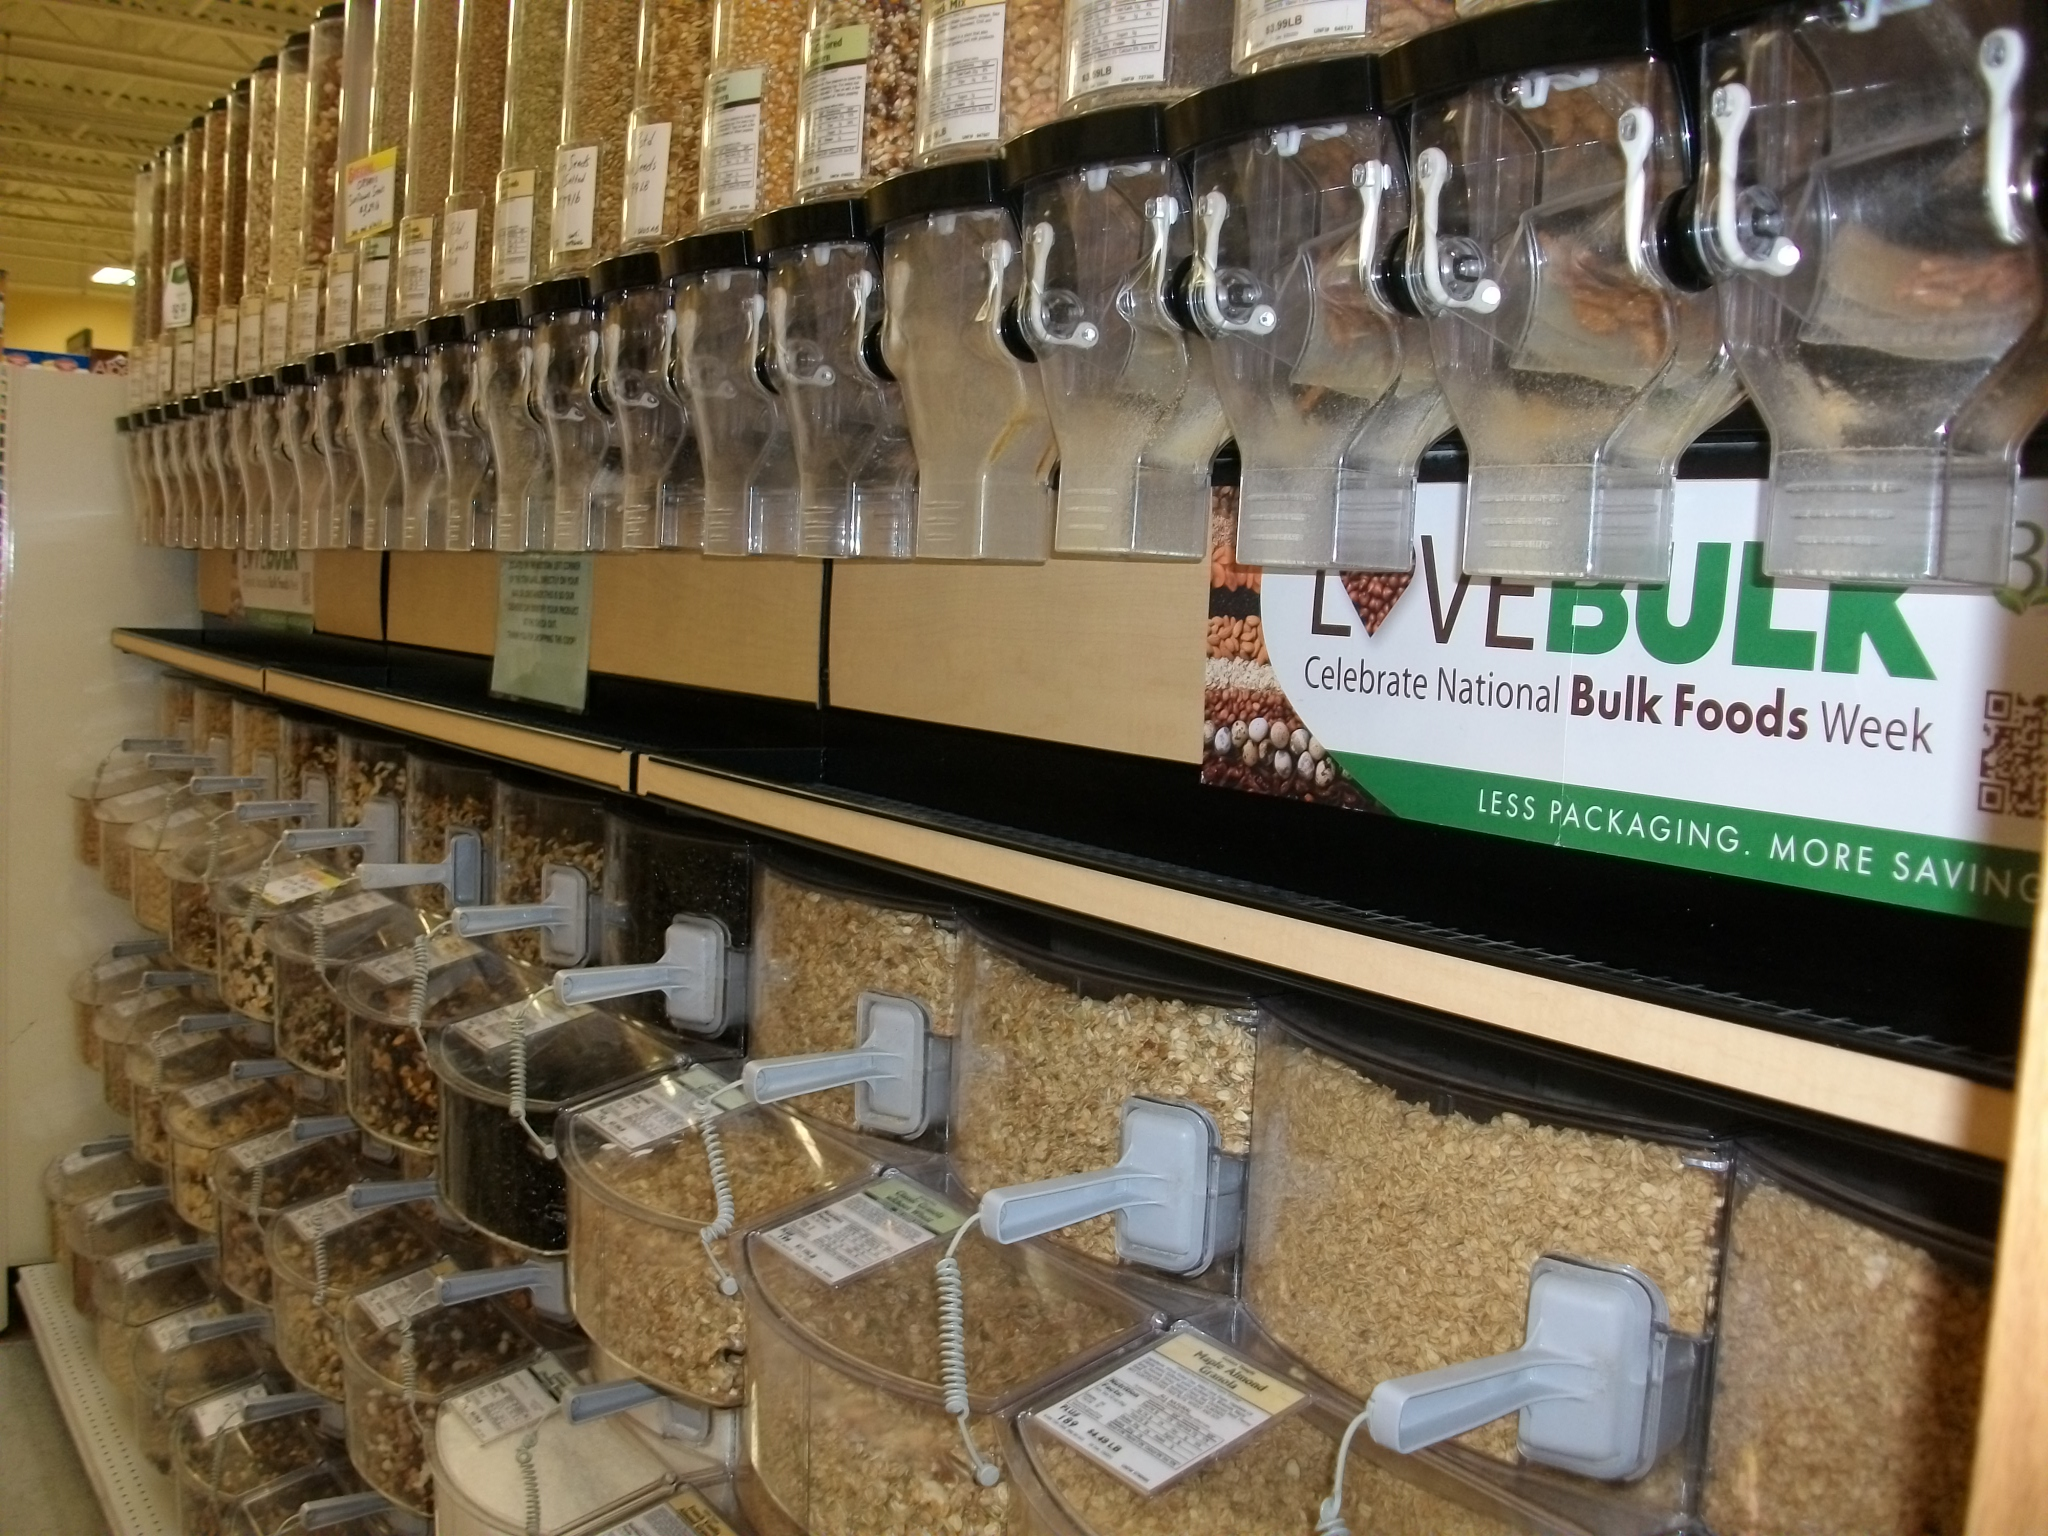 Departments - Produce, Seafood, Bulk Foods, Grocery, Deli